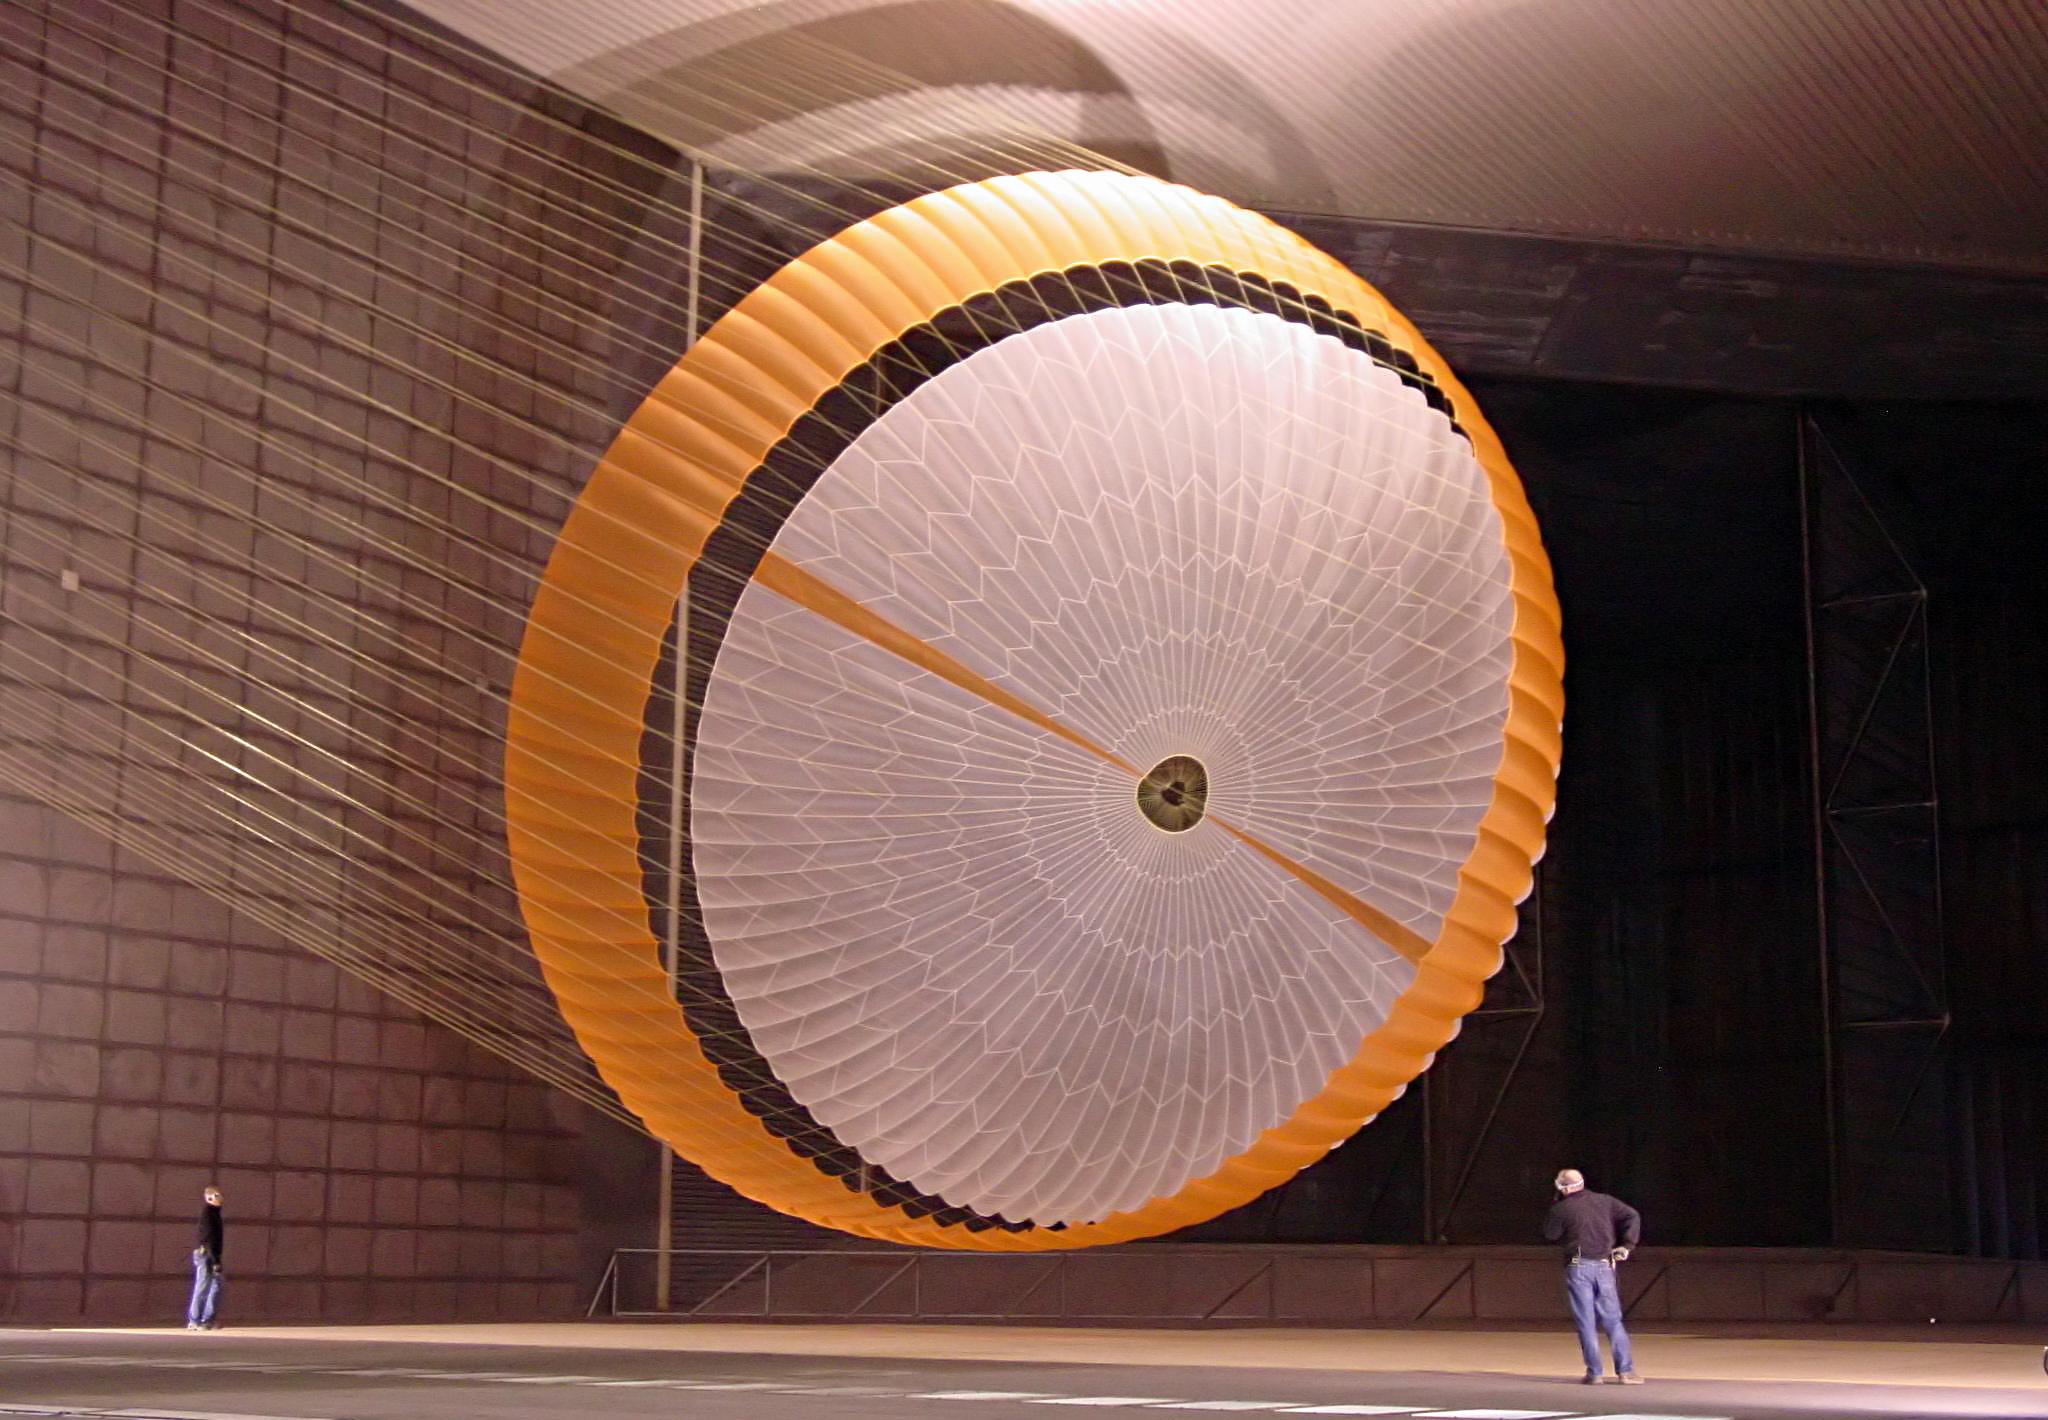 https://i2.wp.com/upload.wikimedia.org/wikipedia/commons/c/c6/MSL_parachute.jpg